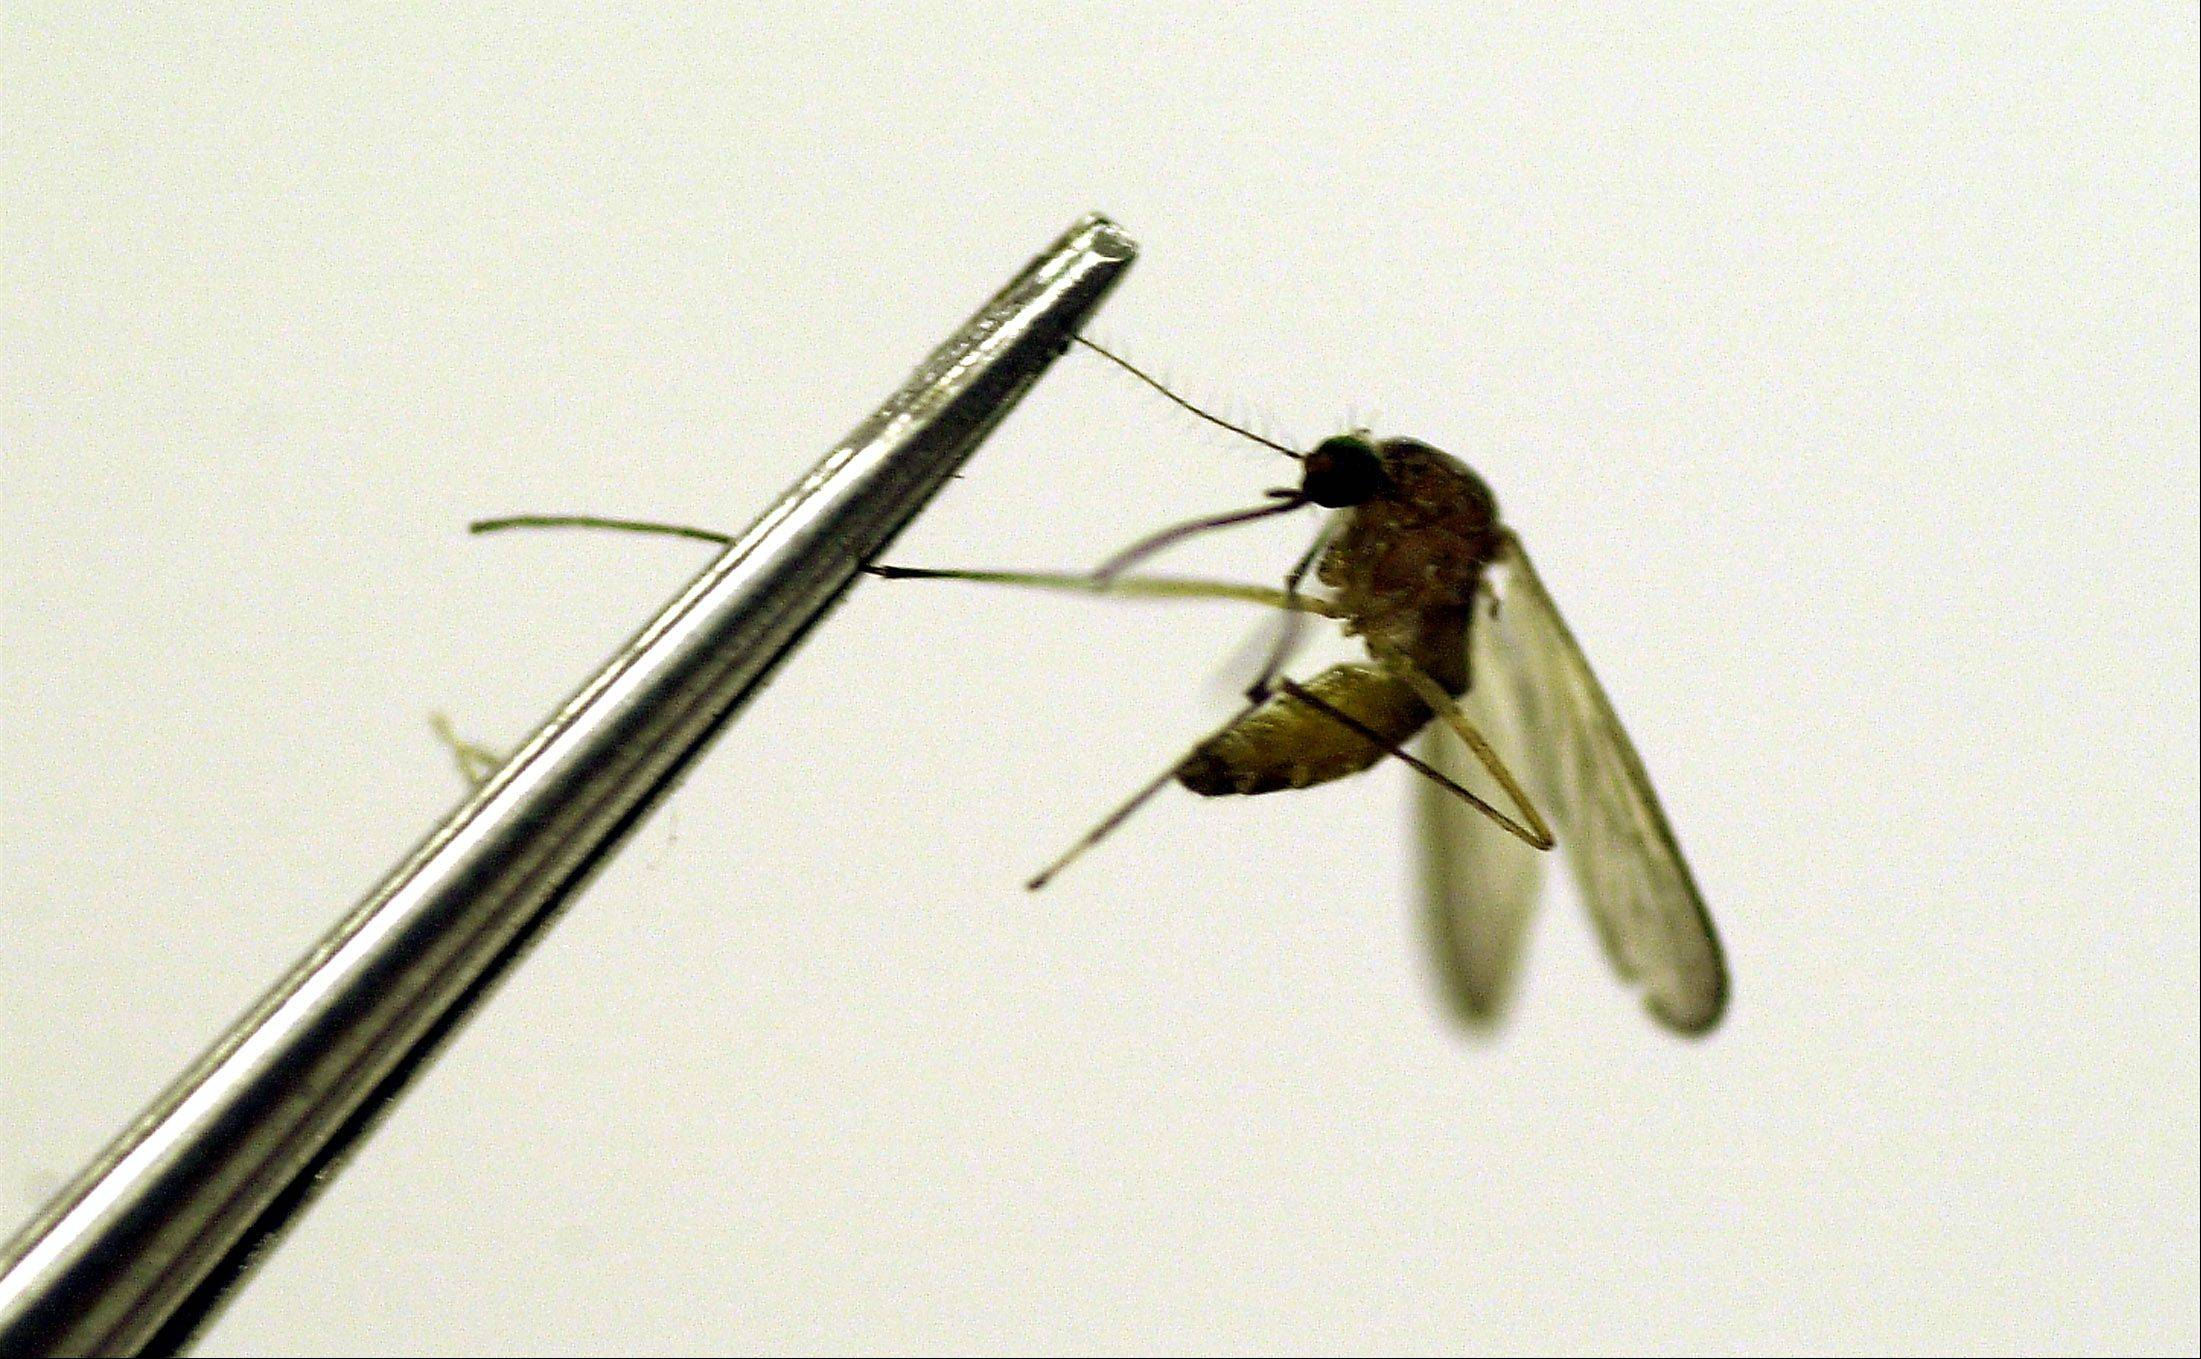 West Nile virus found in local mosquitoes